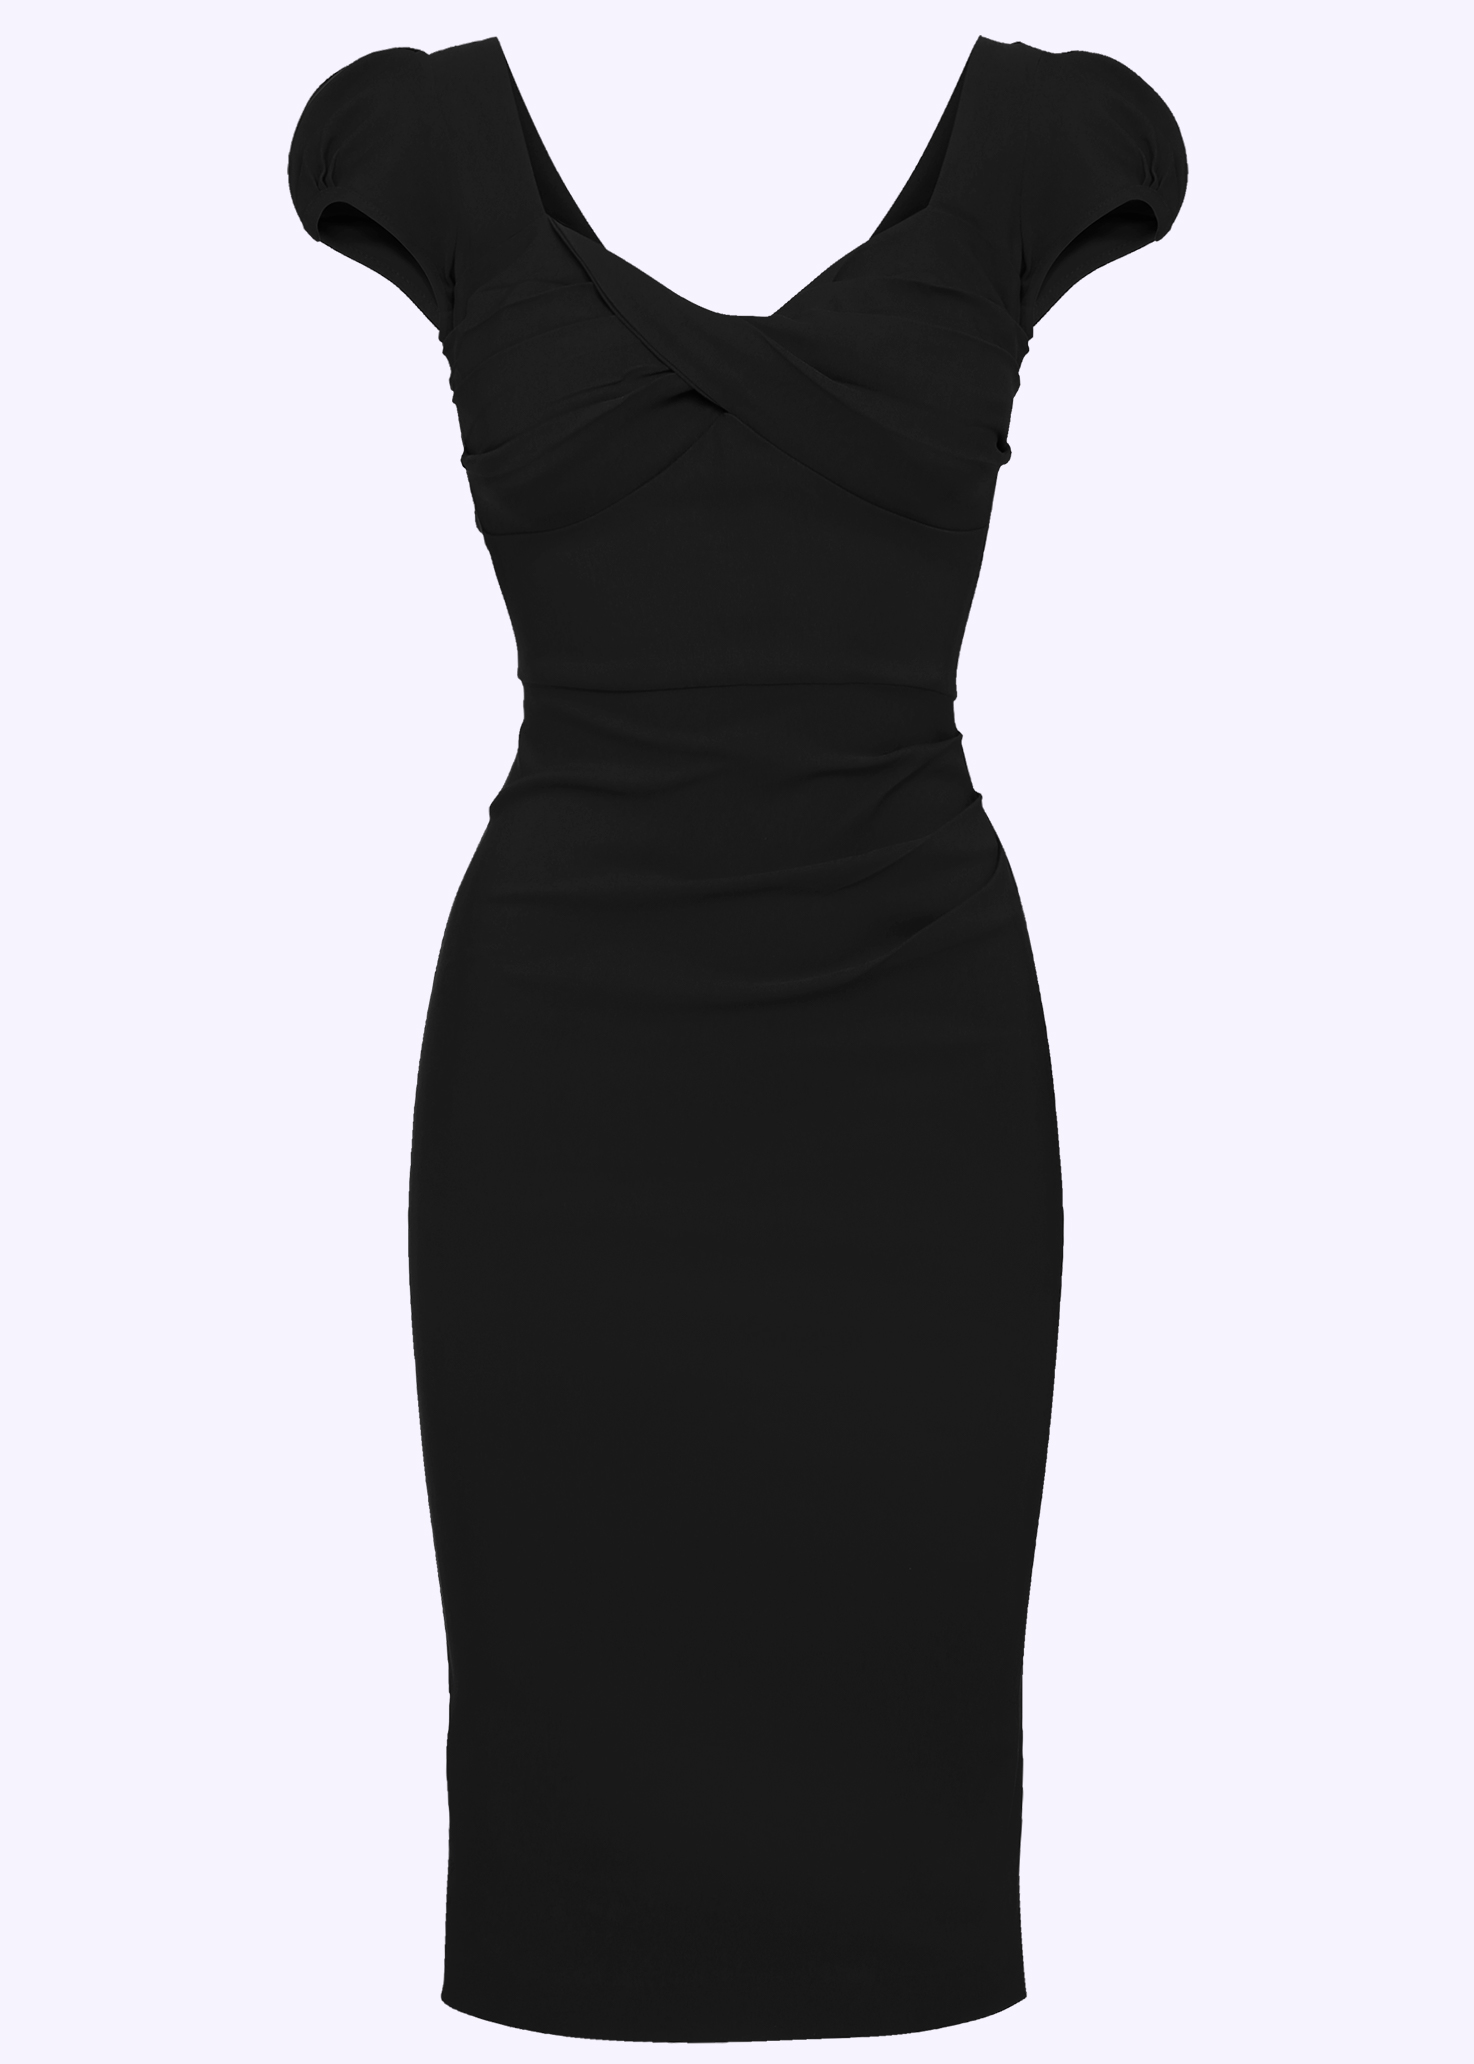 Black 50s inspired pencil dress from Stop Staring!